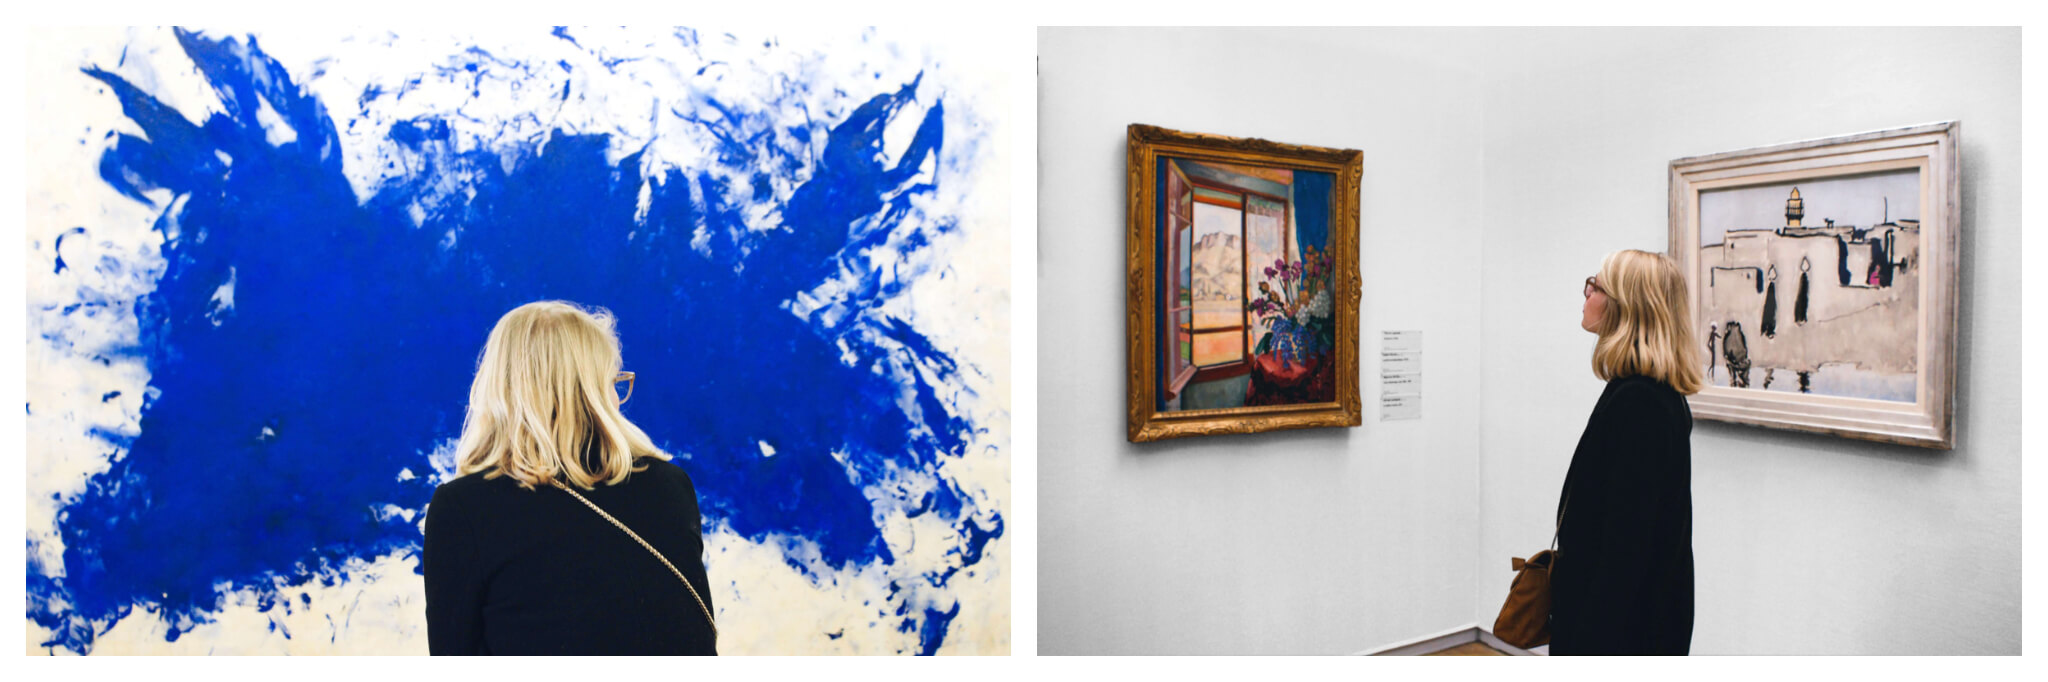 Left: A woman with short blonde hair wearing glasses, a black jacket, and cross-body bag is standing in front of a painting by Yves Klein in Centre Pompidou. The painting is an abstract expressionist piece and is bright blue. The photo is taken from behind. Right: the same blonde woman is looking at a framed painting of flowers in front of a window in Centre Pompidou. To her right is another framed painting.